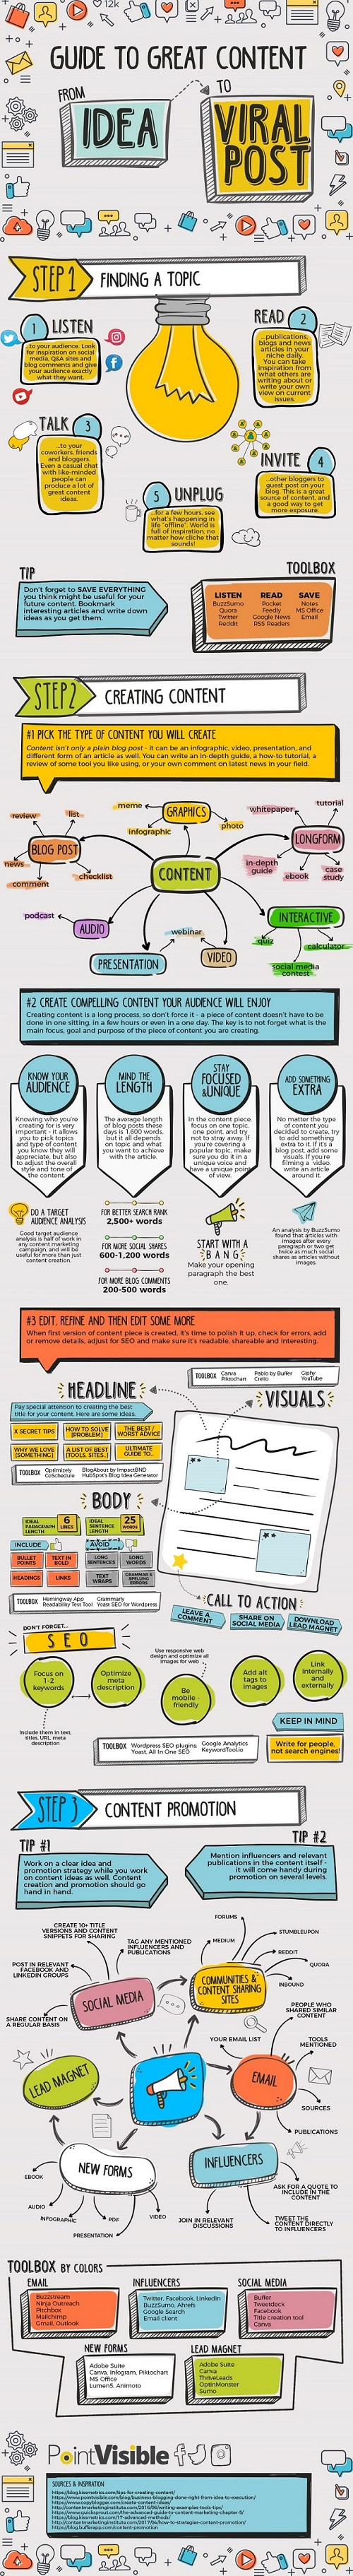 A Roadmap to Great Content - From Idea to Viral Post [Infographic]